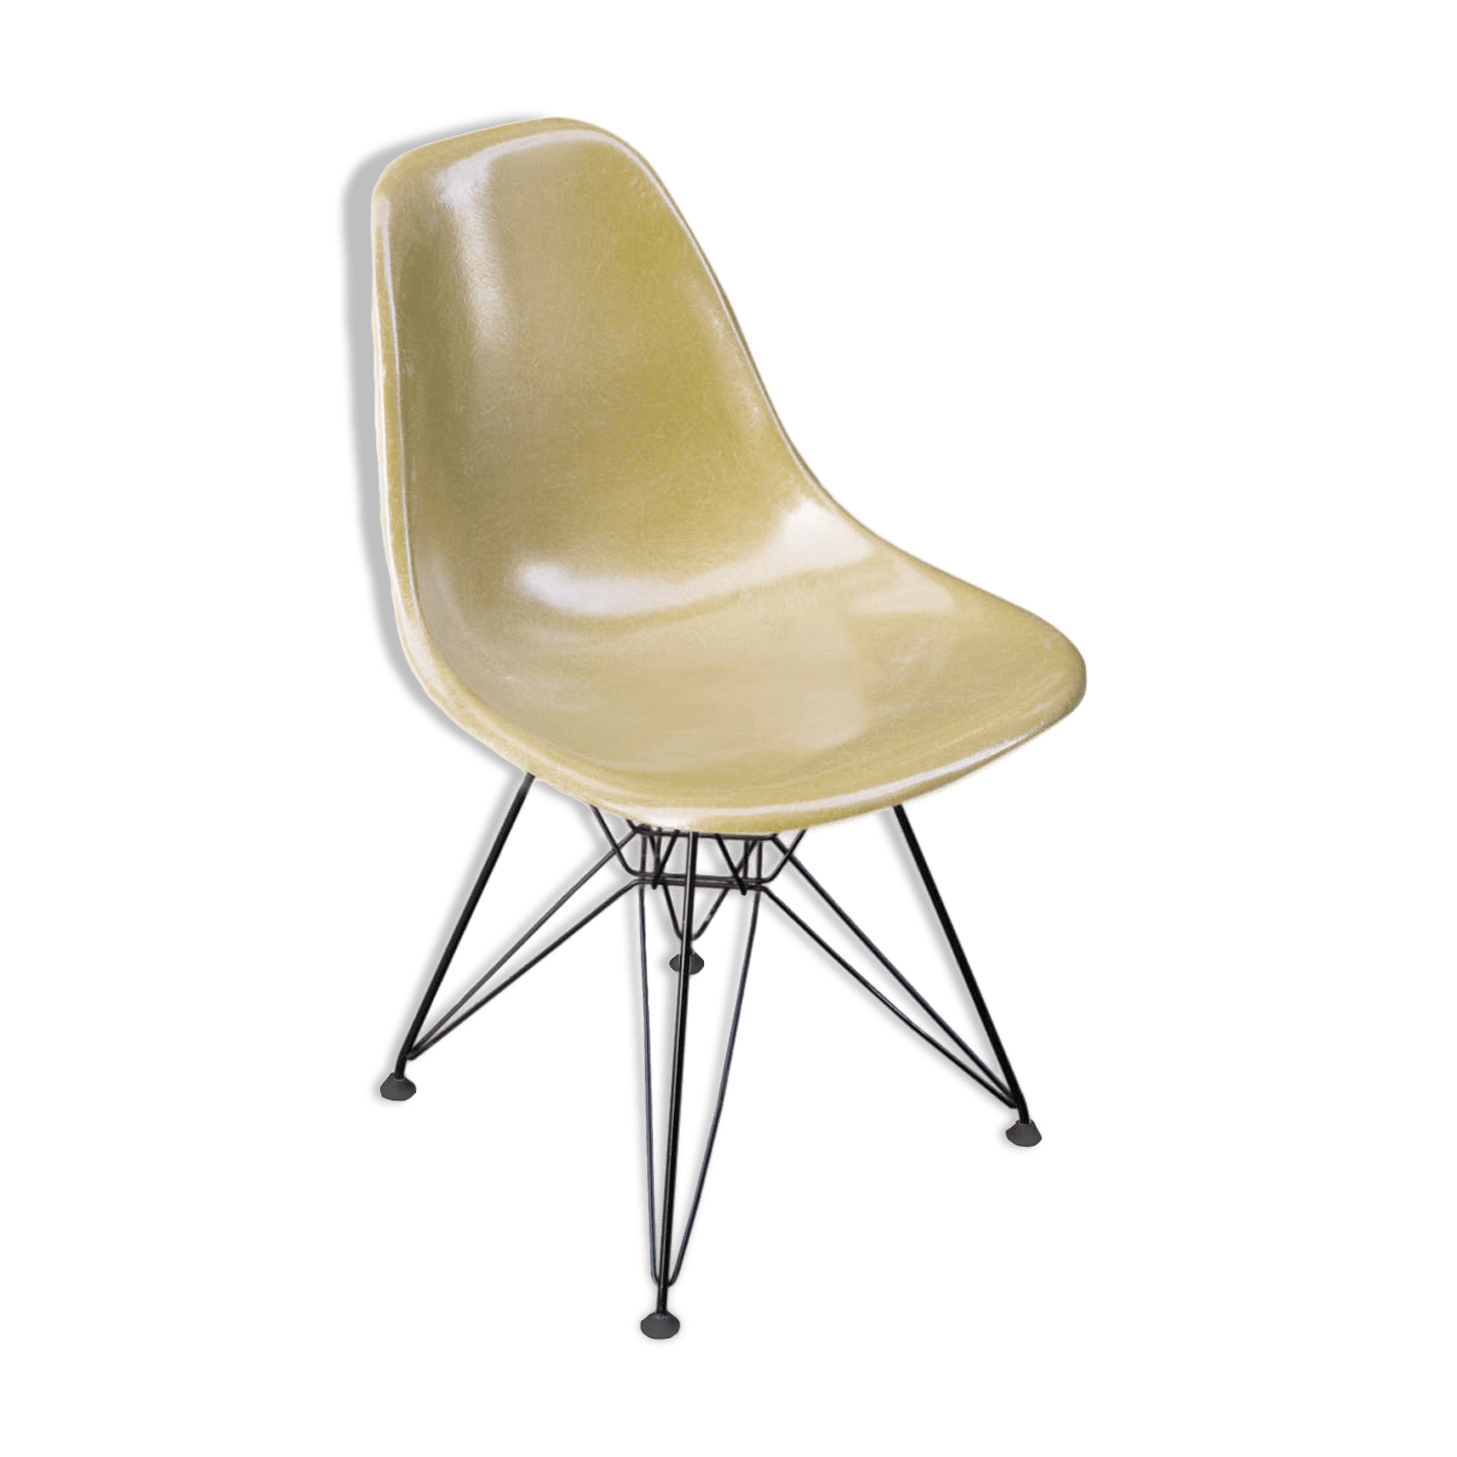 Chaise Design Eames Charles Et Ray Eames Chaise